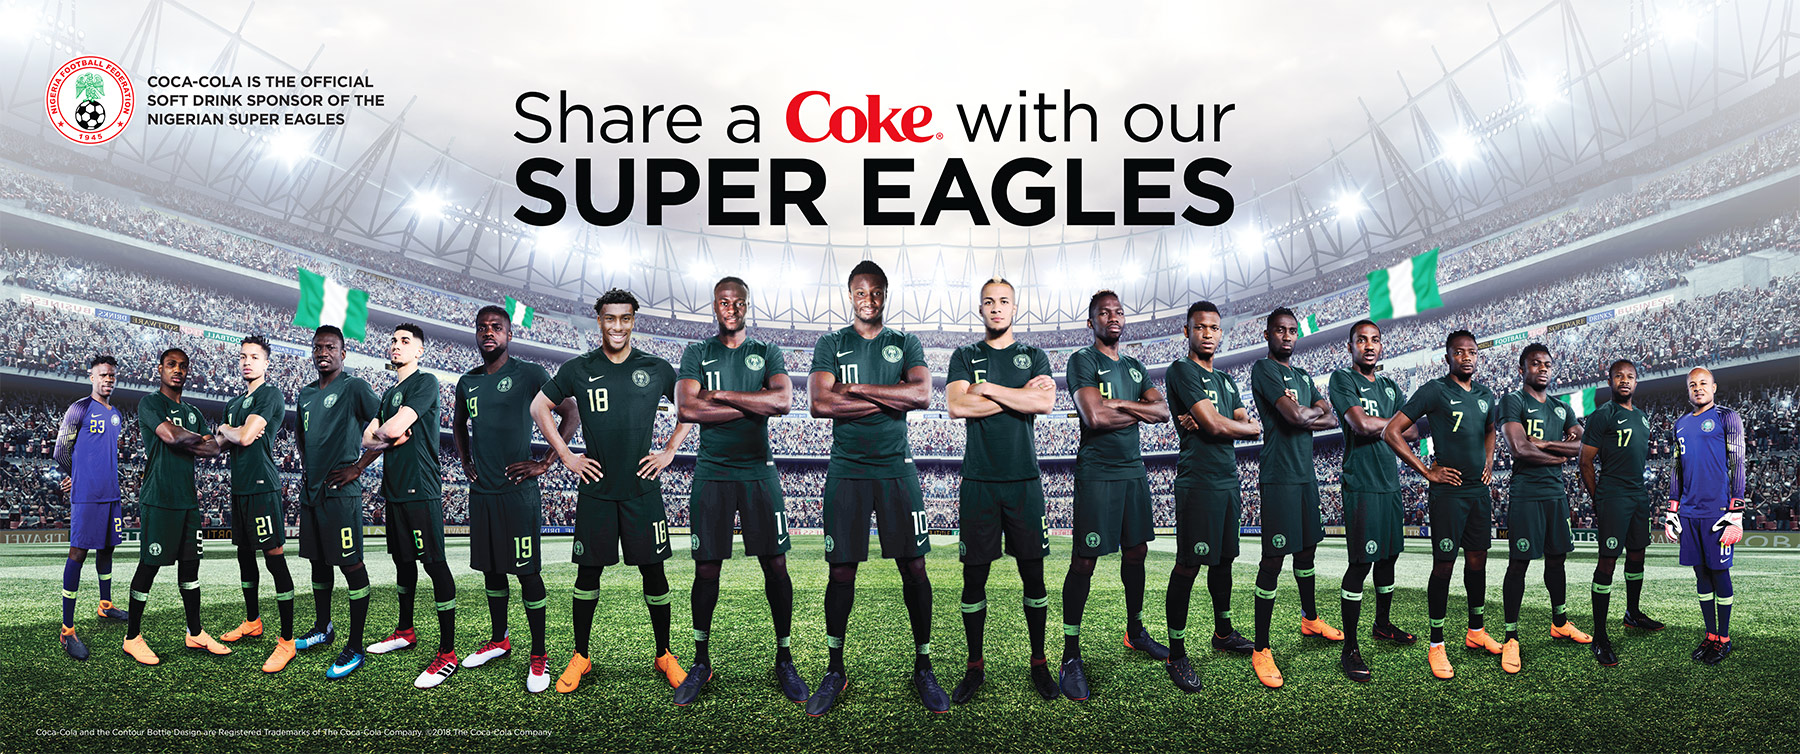 Good Boy Wolf Photographer, filmic portrait, Nigerian football team posing for cocacola